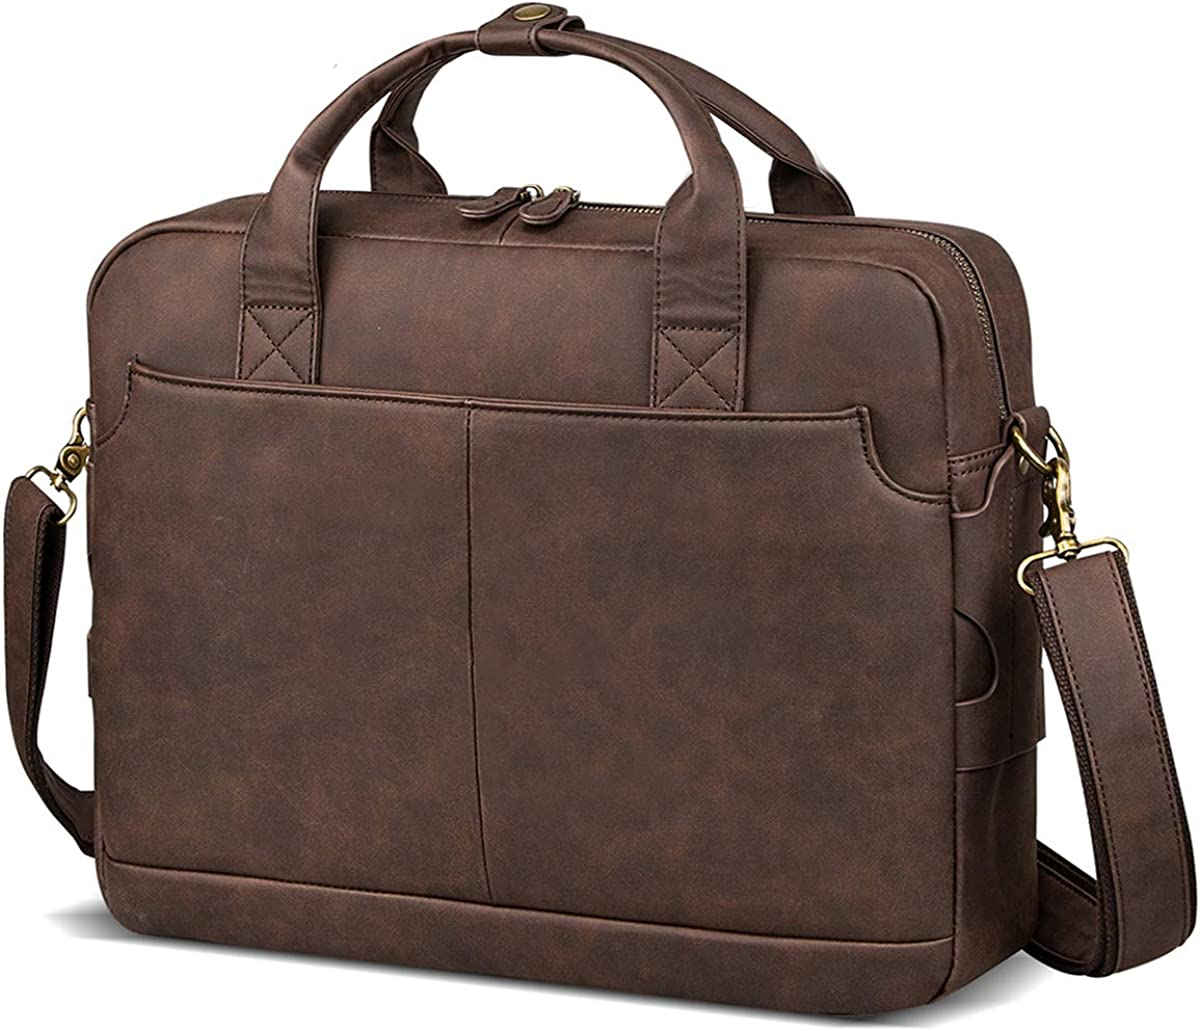 Leather Briefcases for Men Laptop Briefcase 15.6 Inch Travel Business Messenger Bag for Men Computer Bag Retro Waterproof Brown,Perfect Fathers Day Gifts for Dad/Gifts For Husband